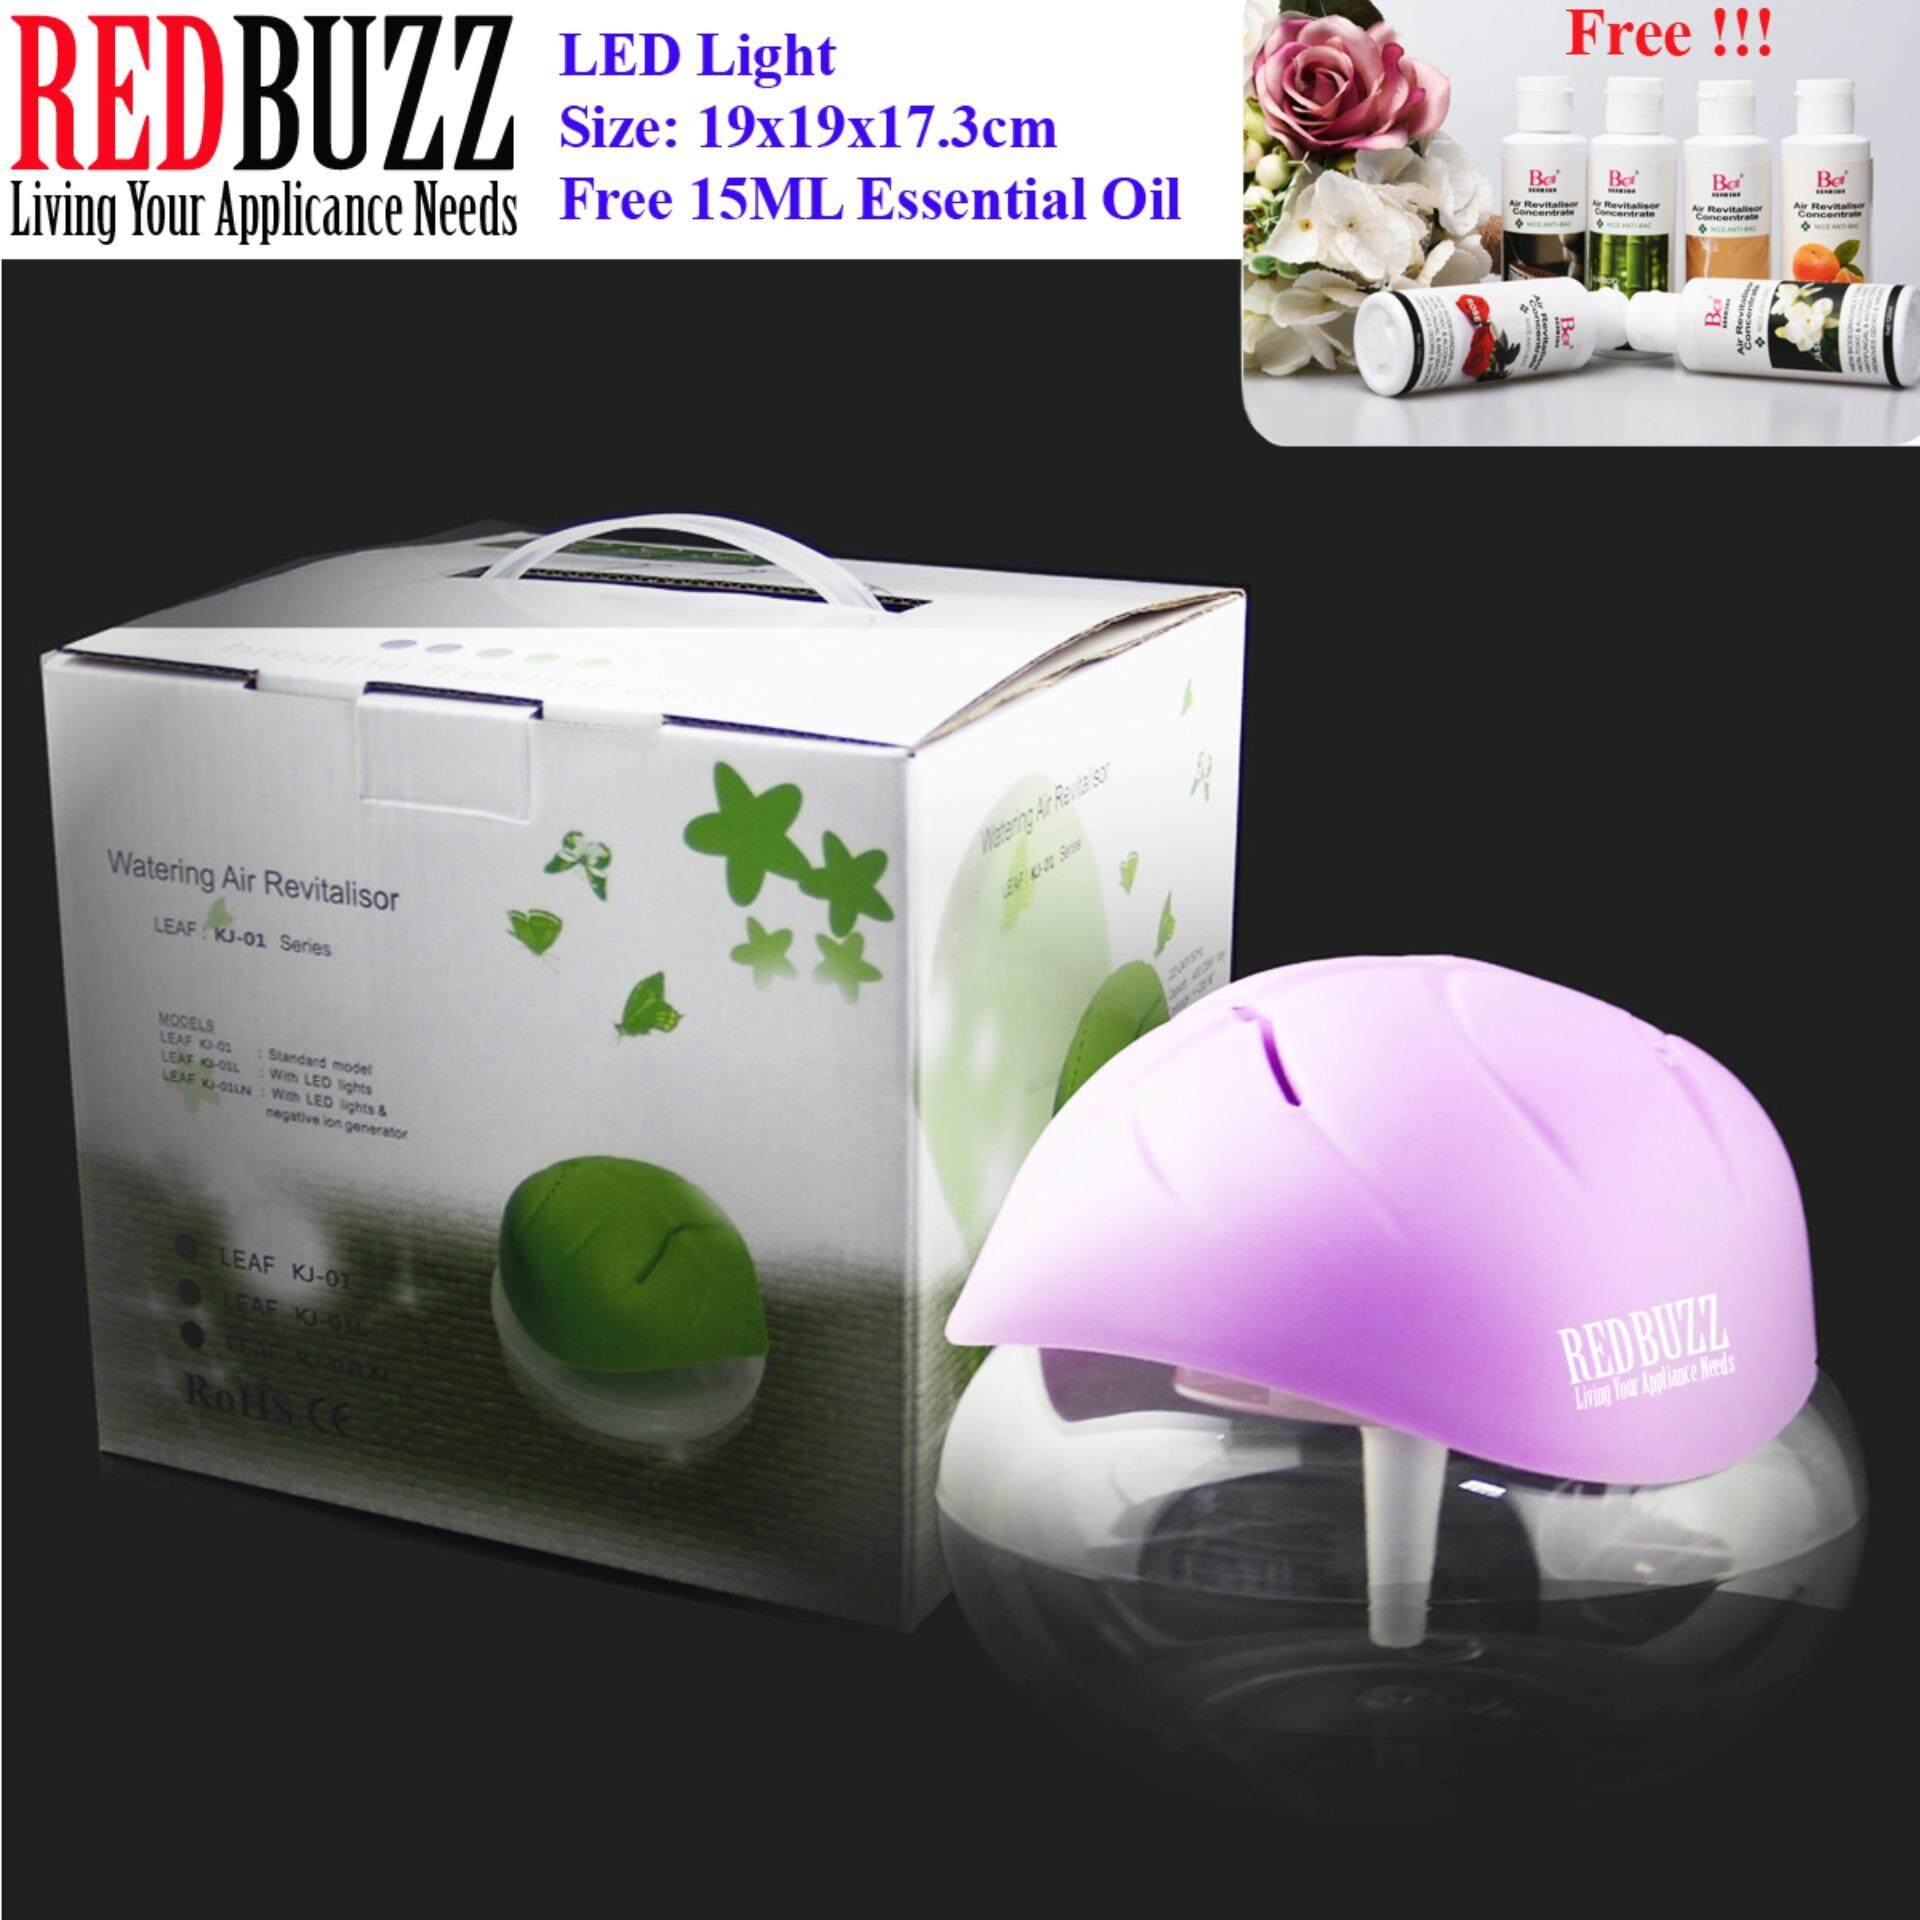 Redbuzz Watering Air Revitalisor Fresh Purifiers (purple) With Led Light + Free 15ml Essential Oil By Redbuzz.